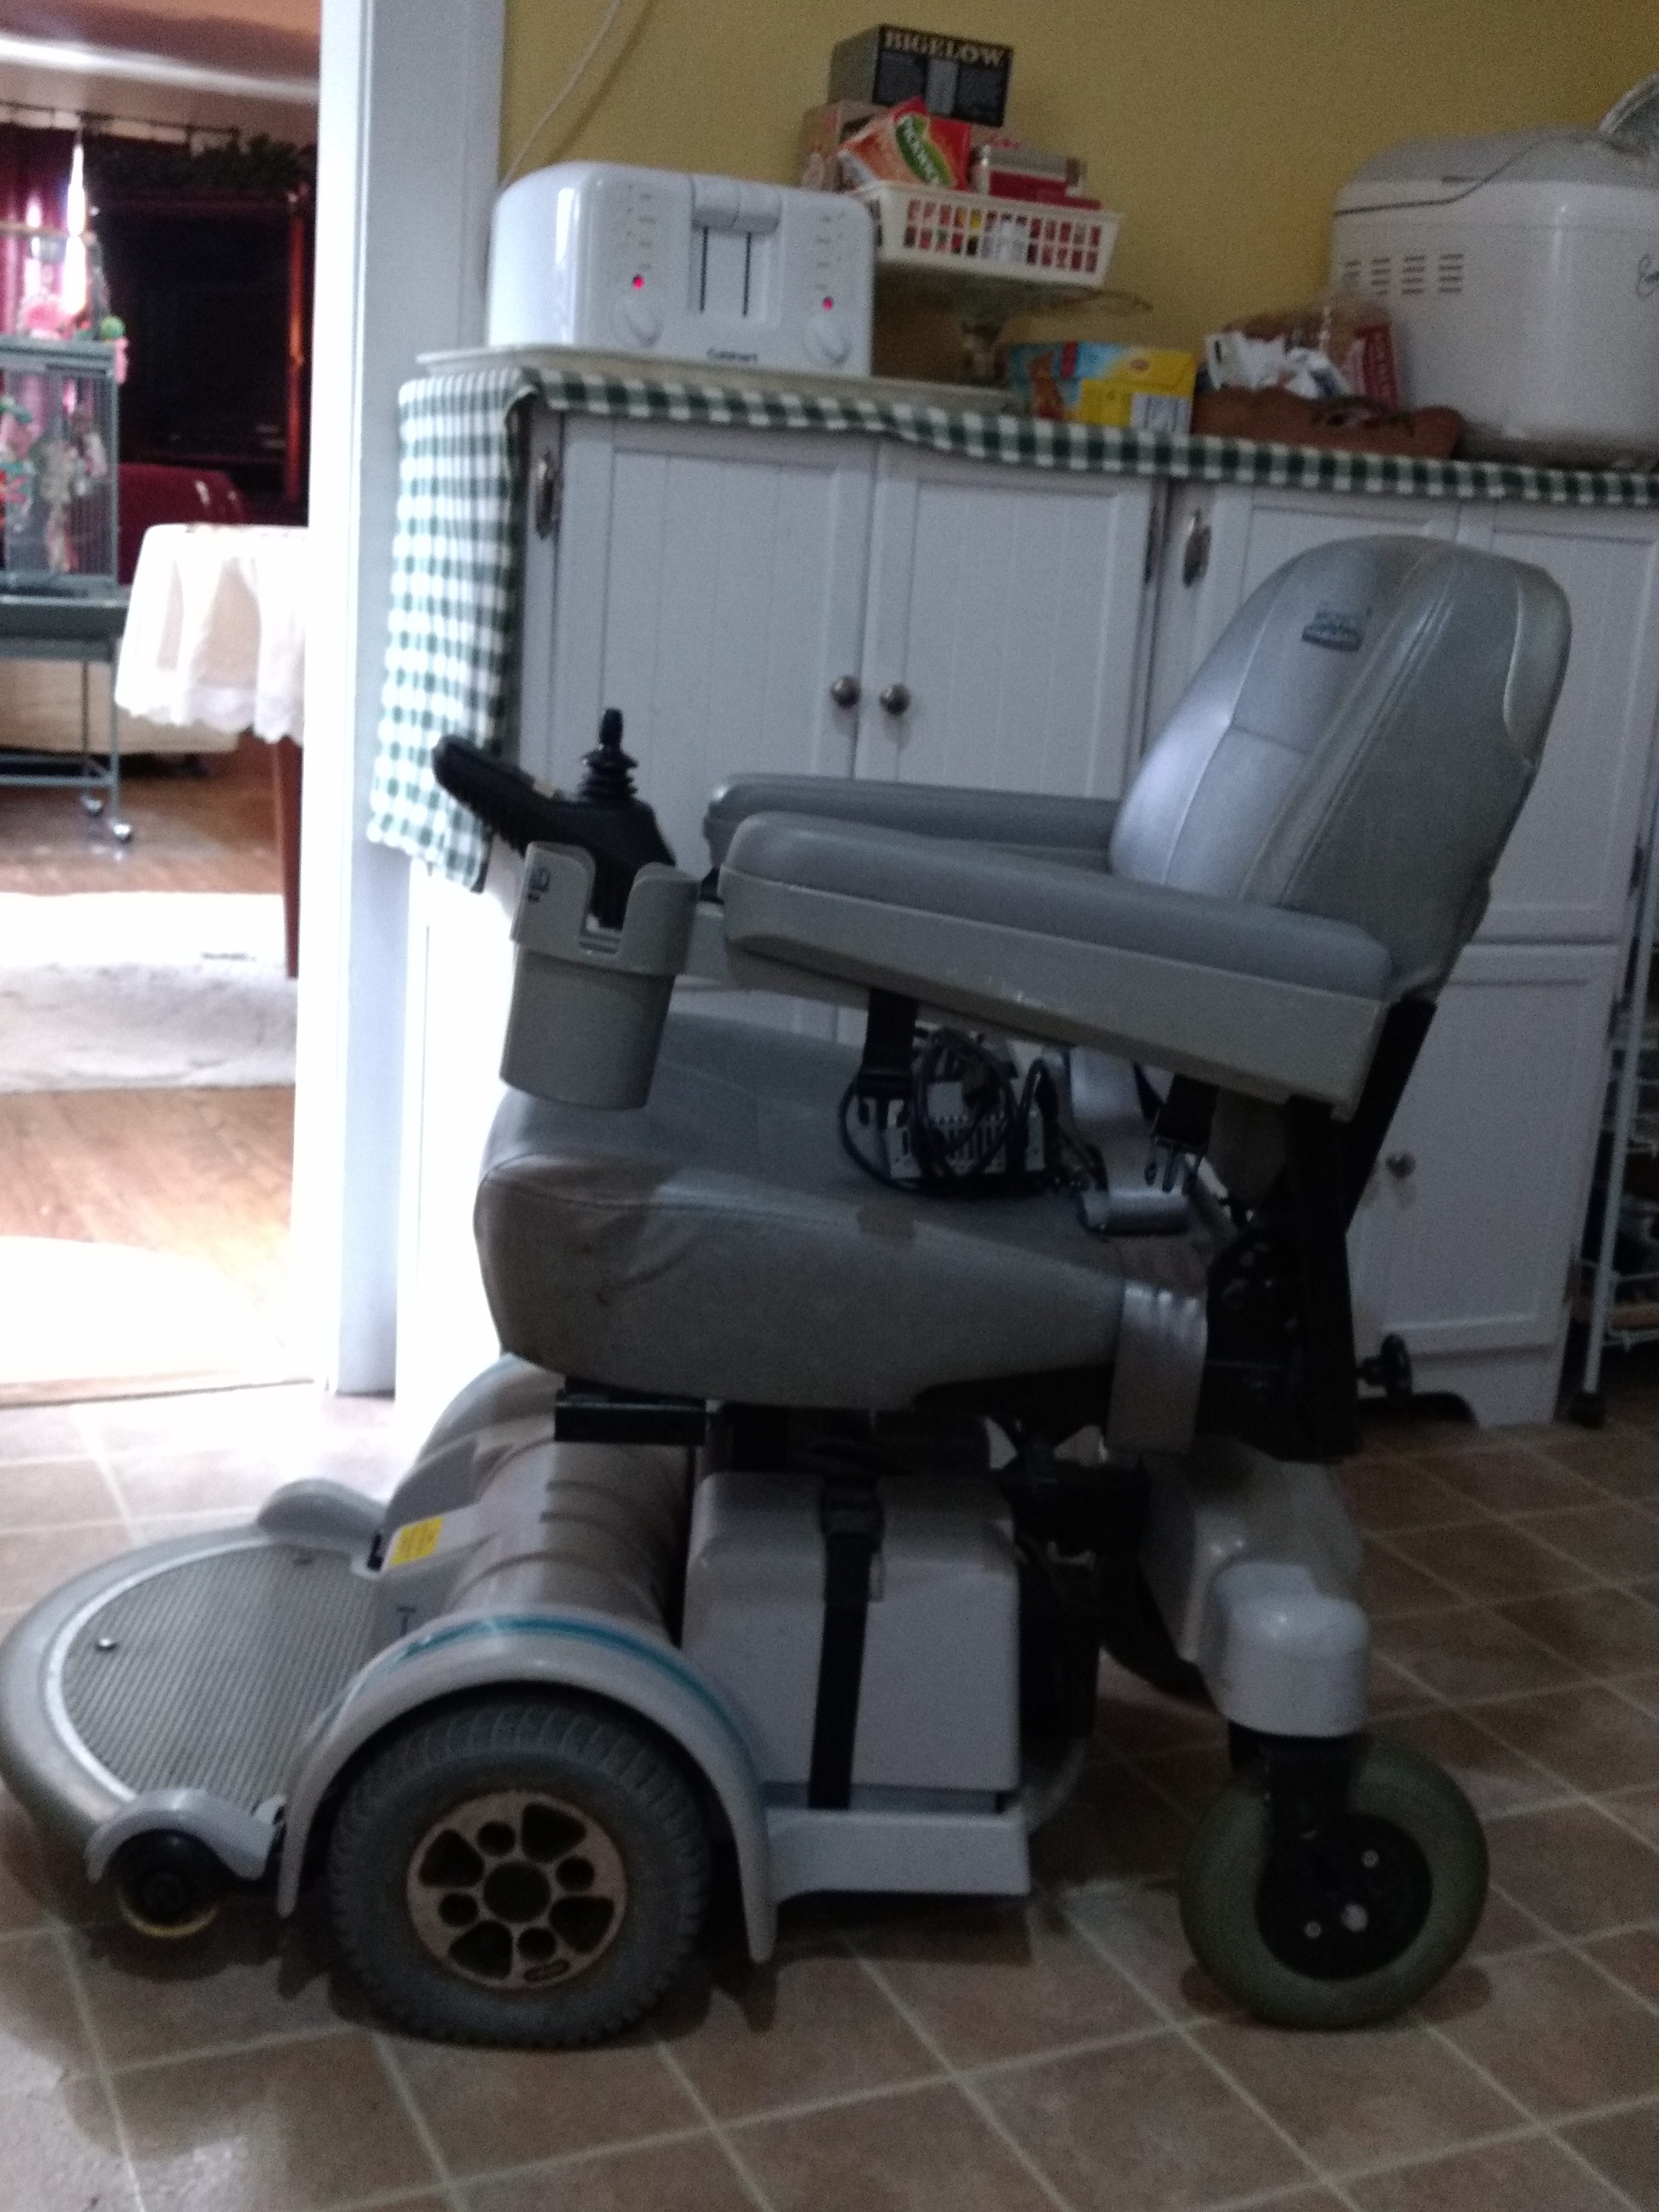 Hoveround Chair A Nearly Brand New Hoveround Buy And Sell Used Electric